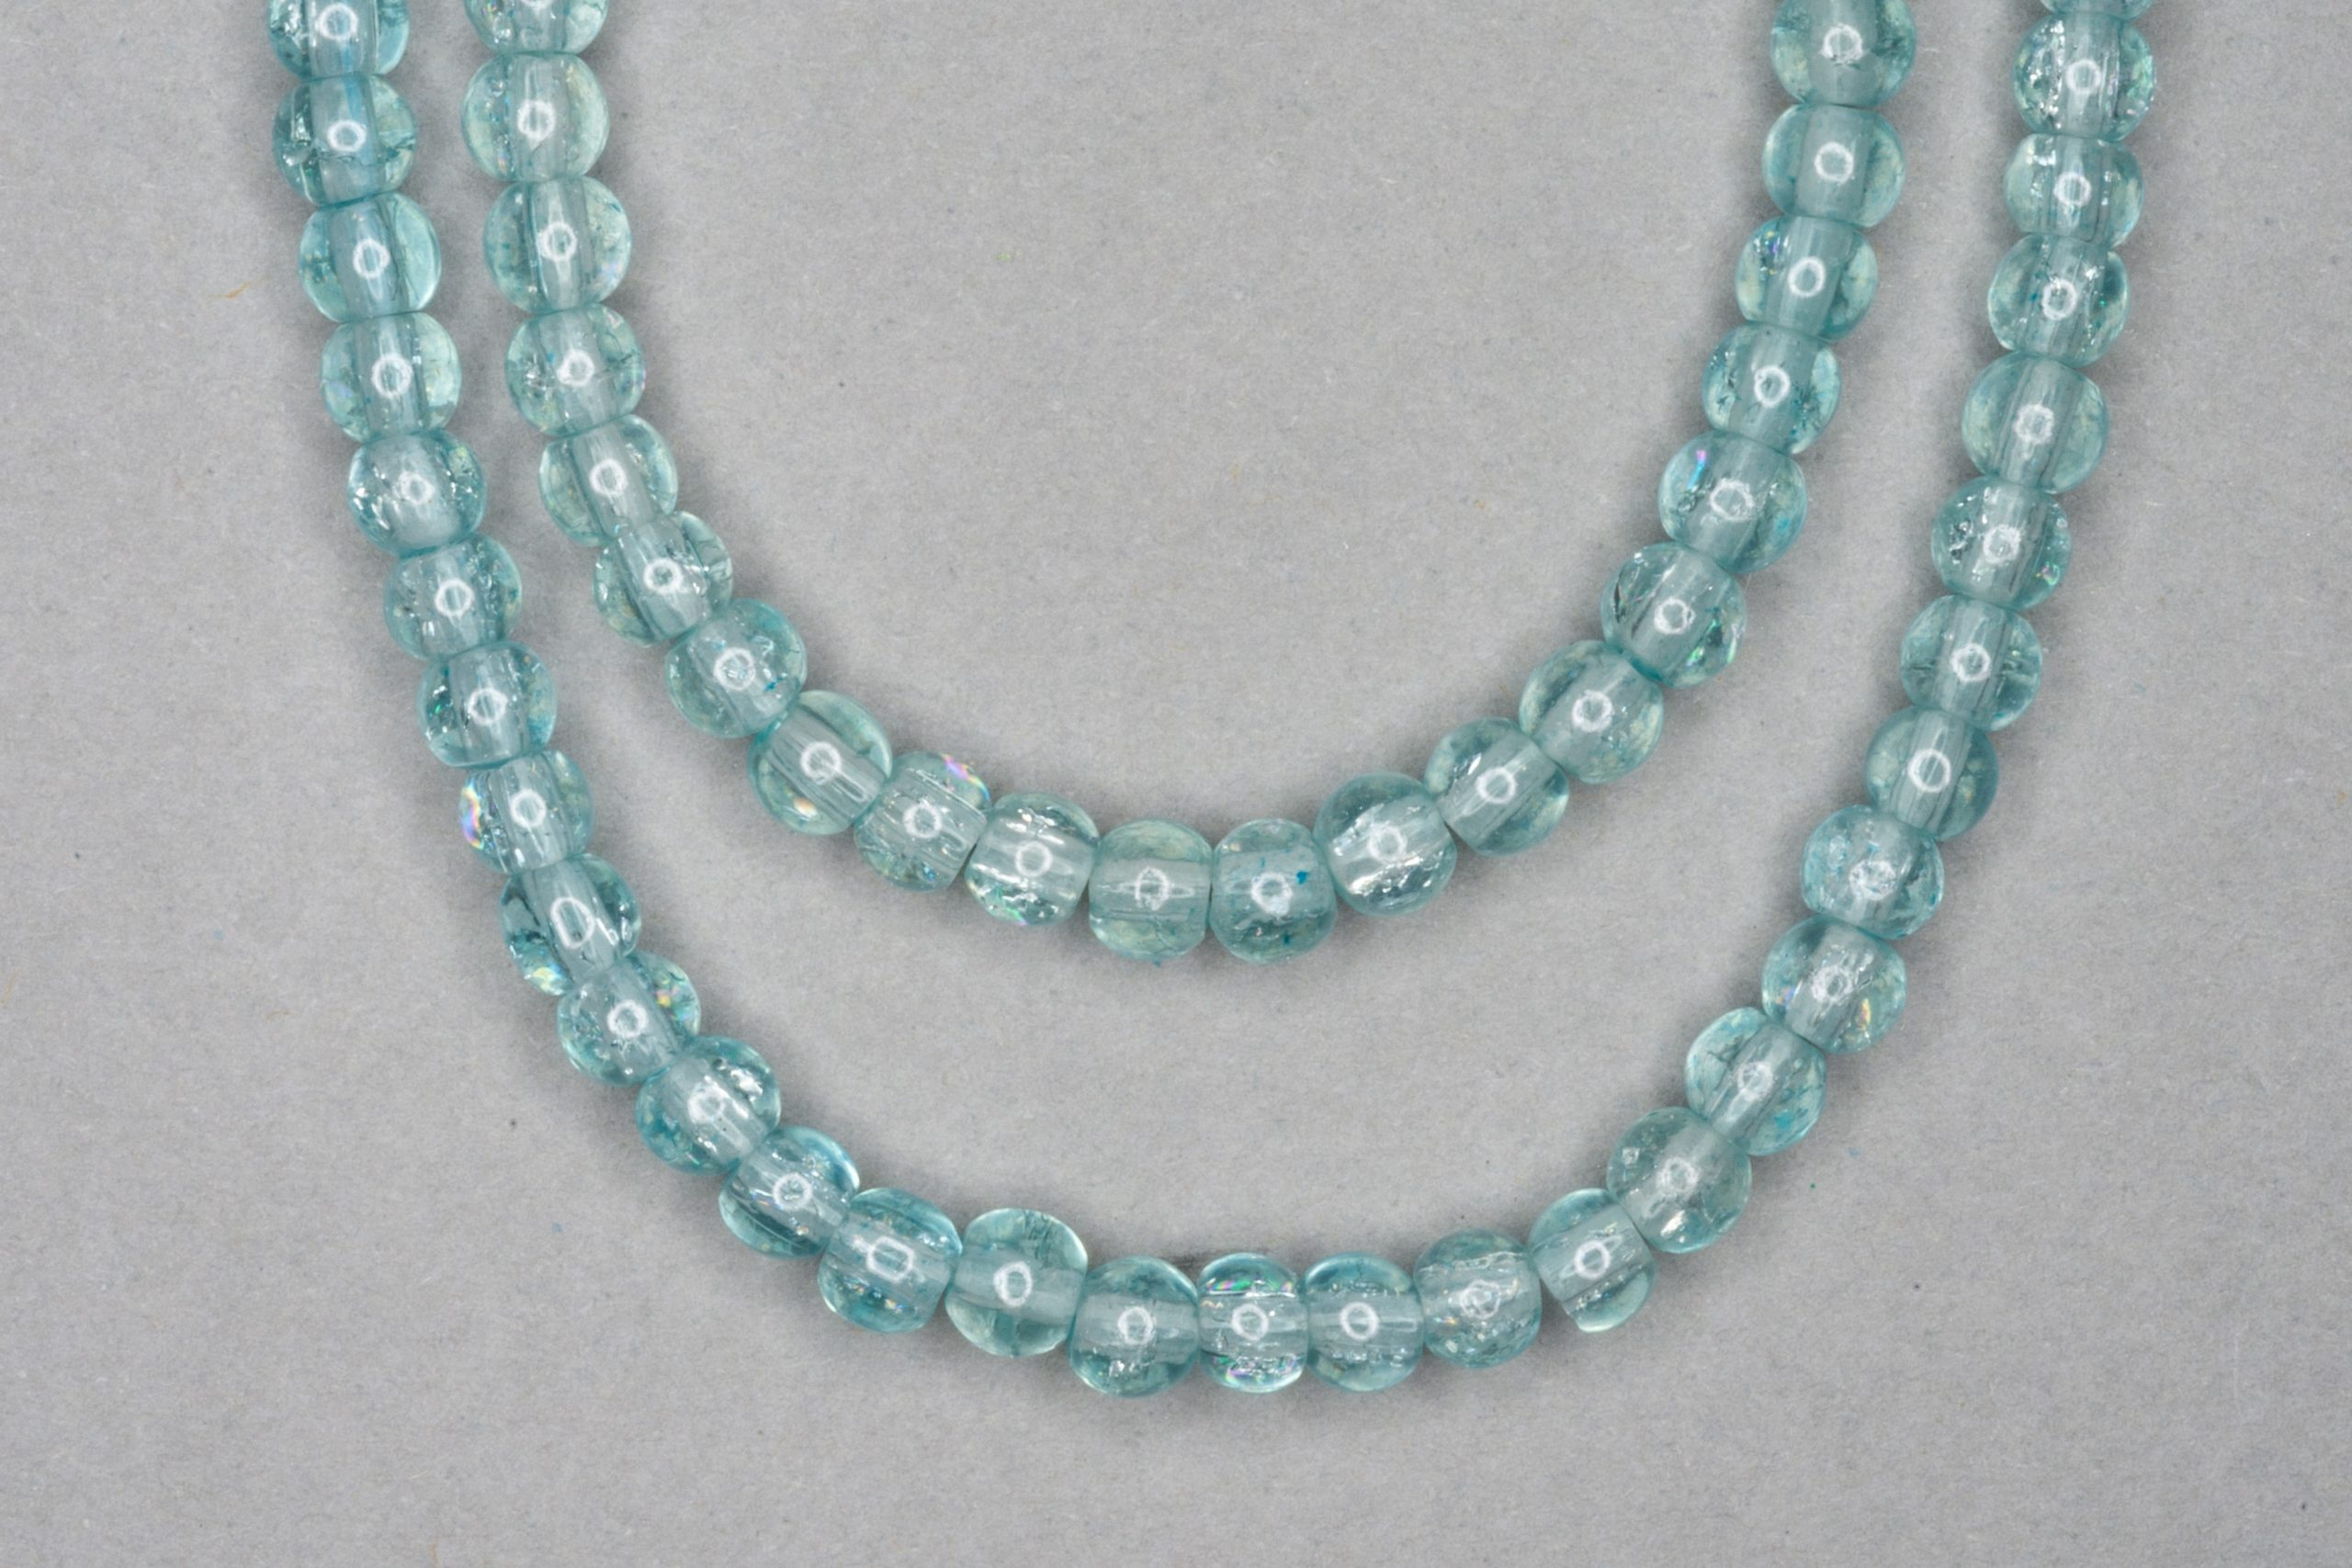 Ice Blue Crackle Glass Beads